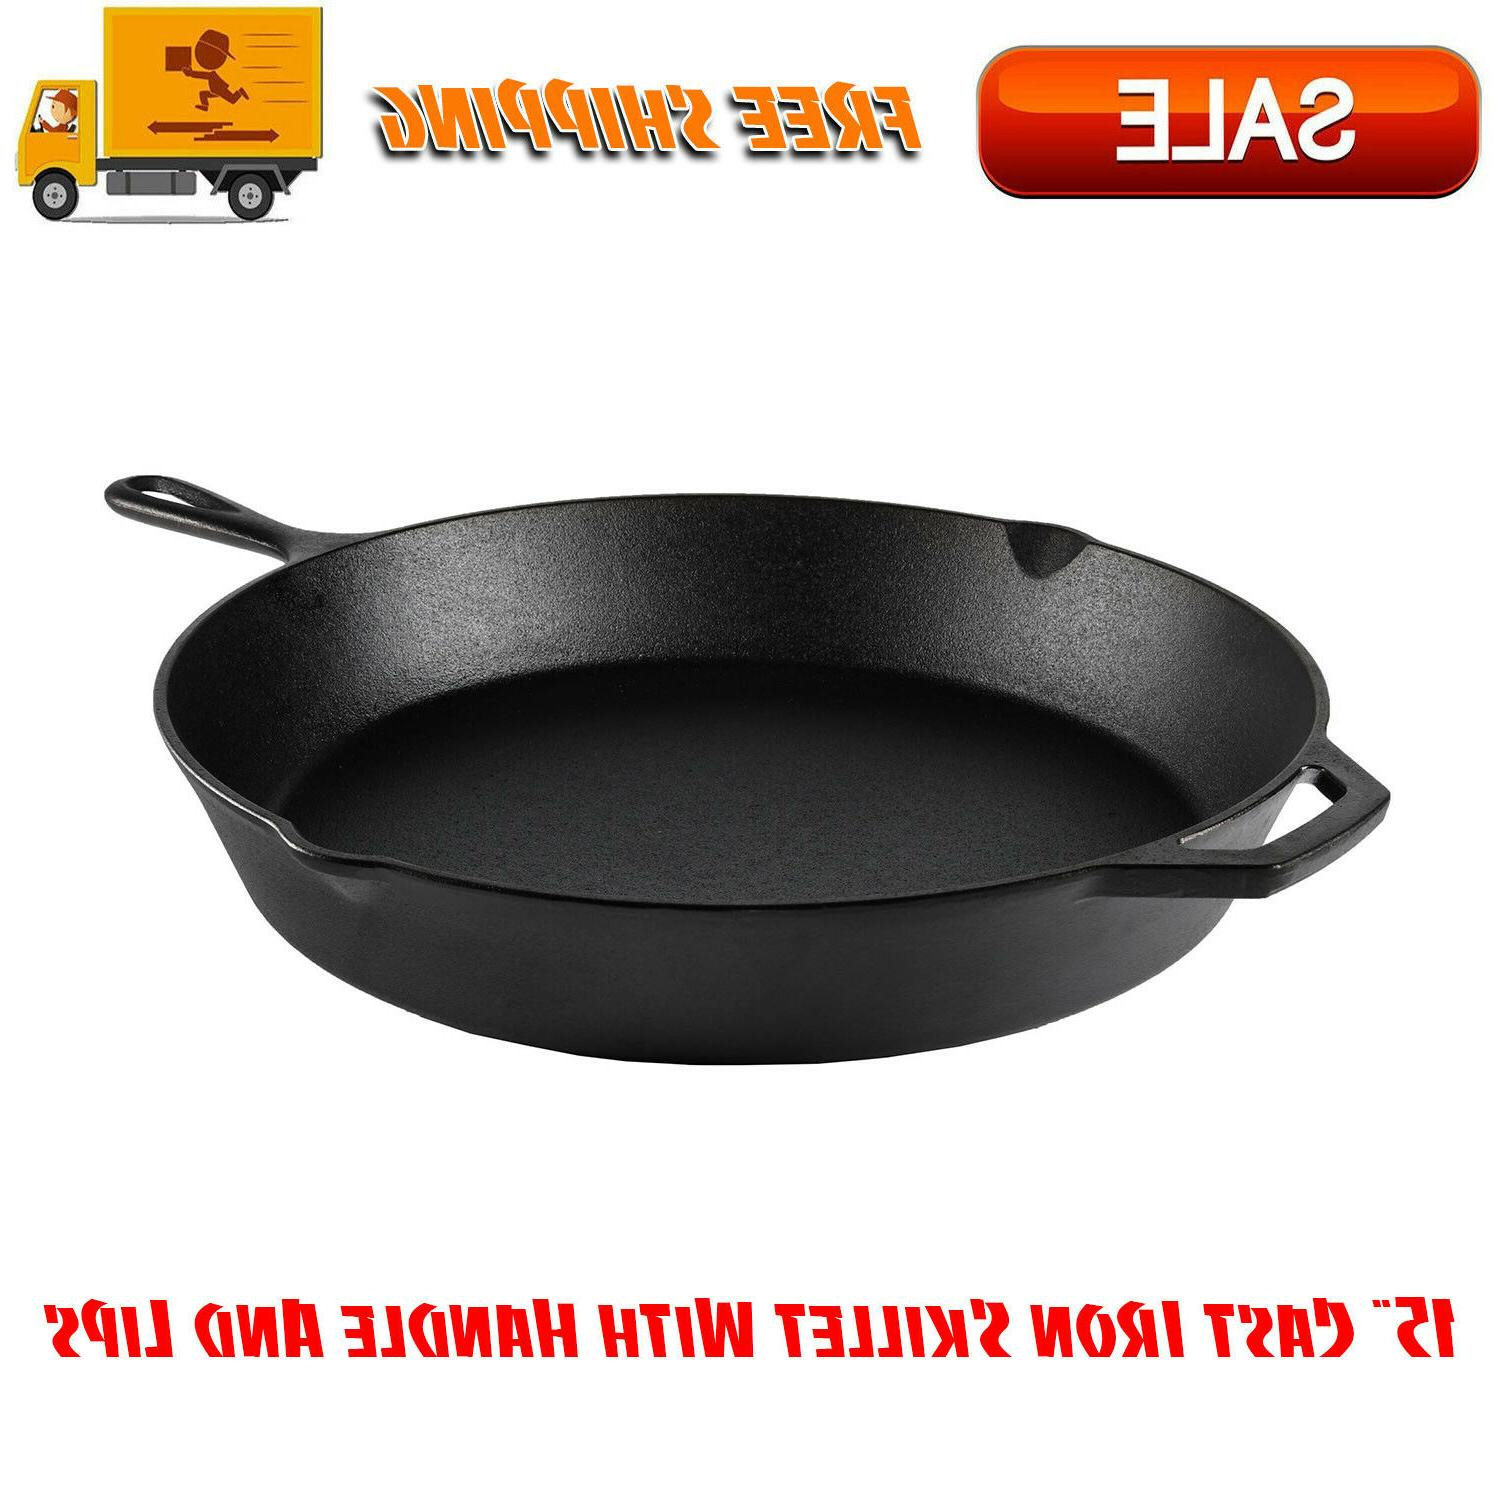 15 cast iron skillet with handle